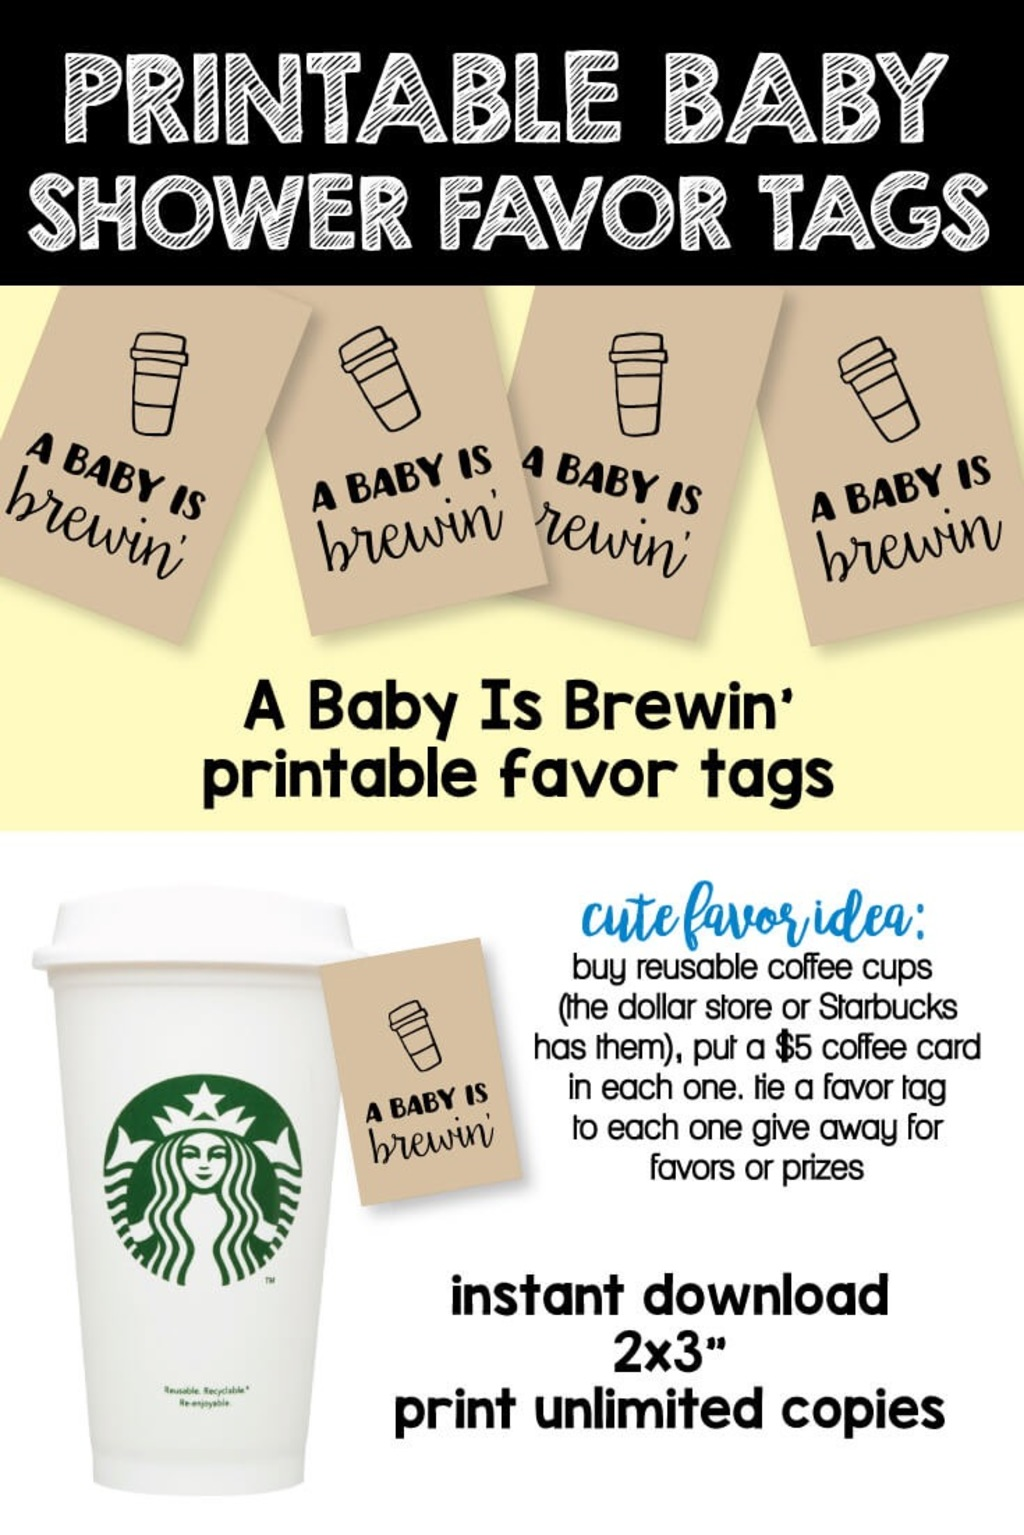 Printable A Baby Is Brewing Favor Tags Printitbaby Com